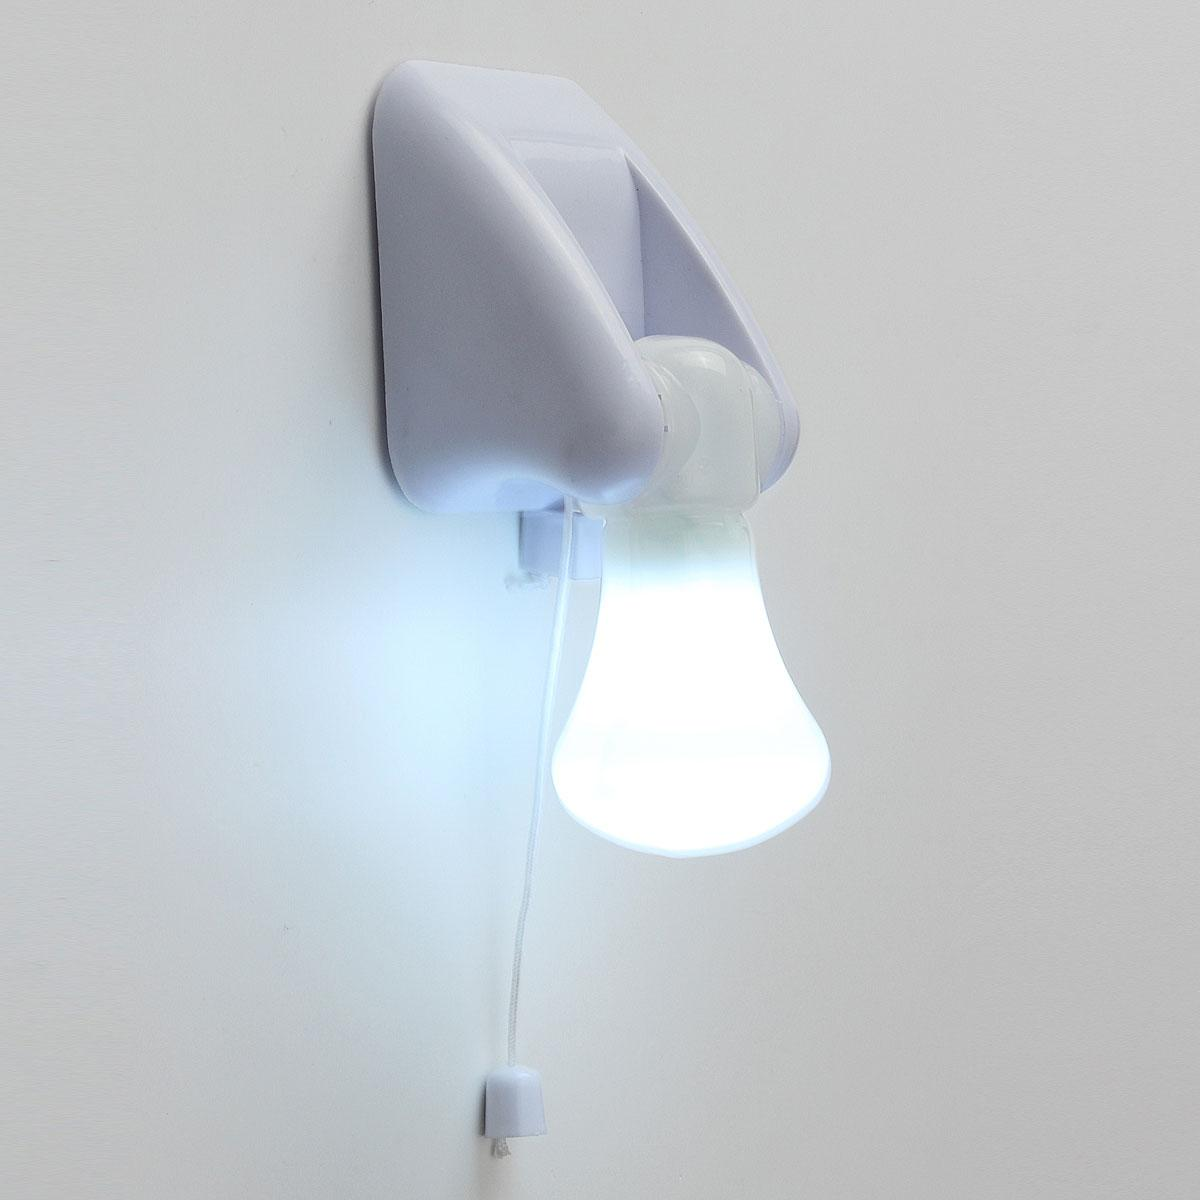 pretty nice cd102 5a024 2019 Portable Pull Cord LED Wall Light Bulb Cabinet Closet Lamp Night Light  Battery Operated Self Adhesive Hallway Bedroom Lighting From Goddard, ...